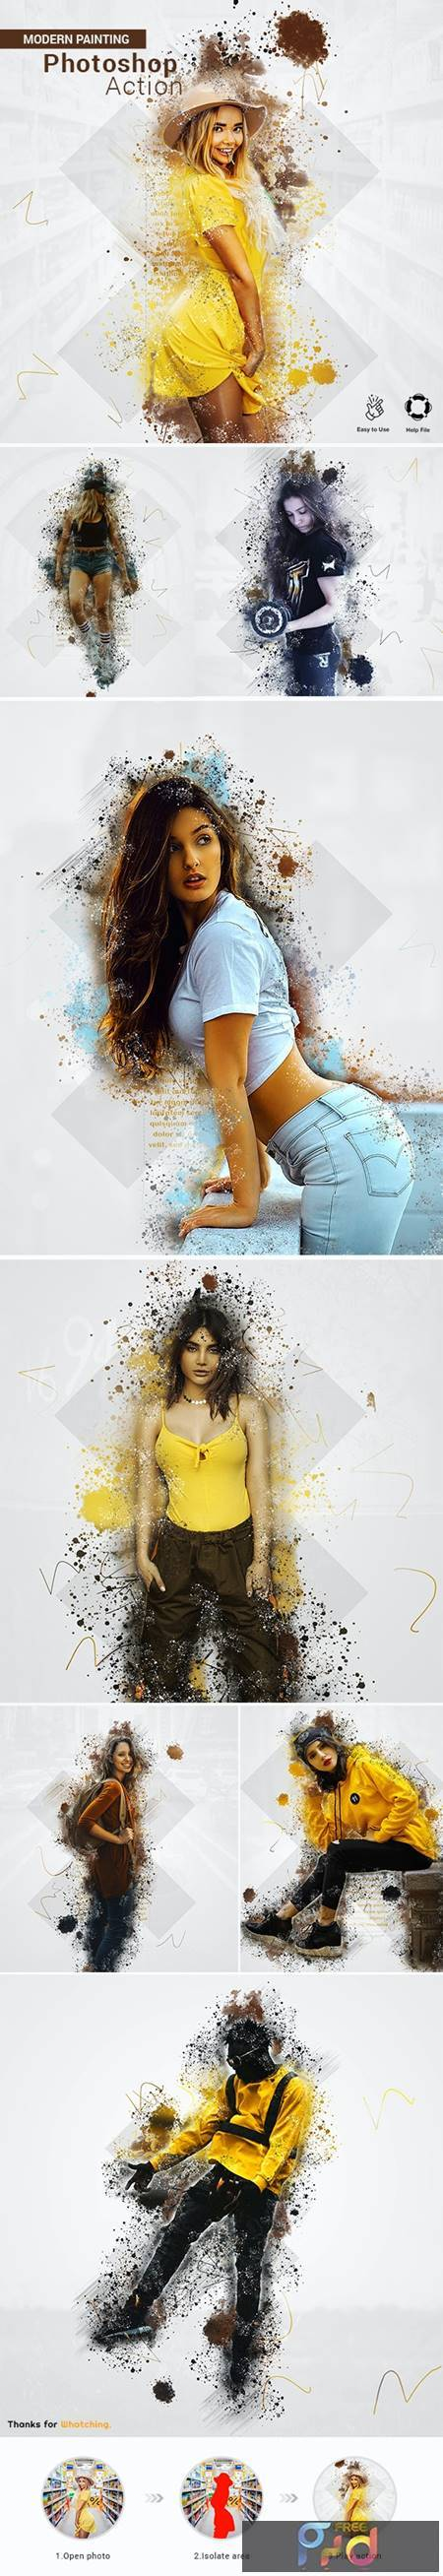 Painting Photoshop Action 27497079 1